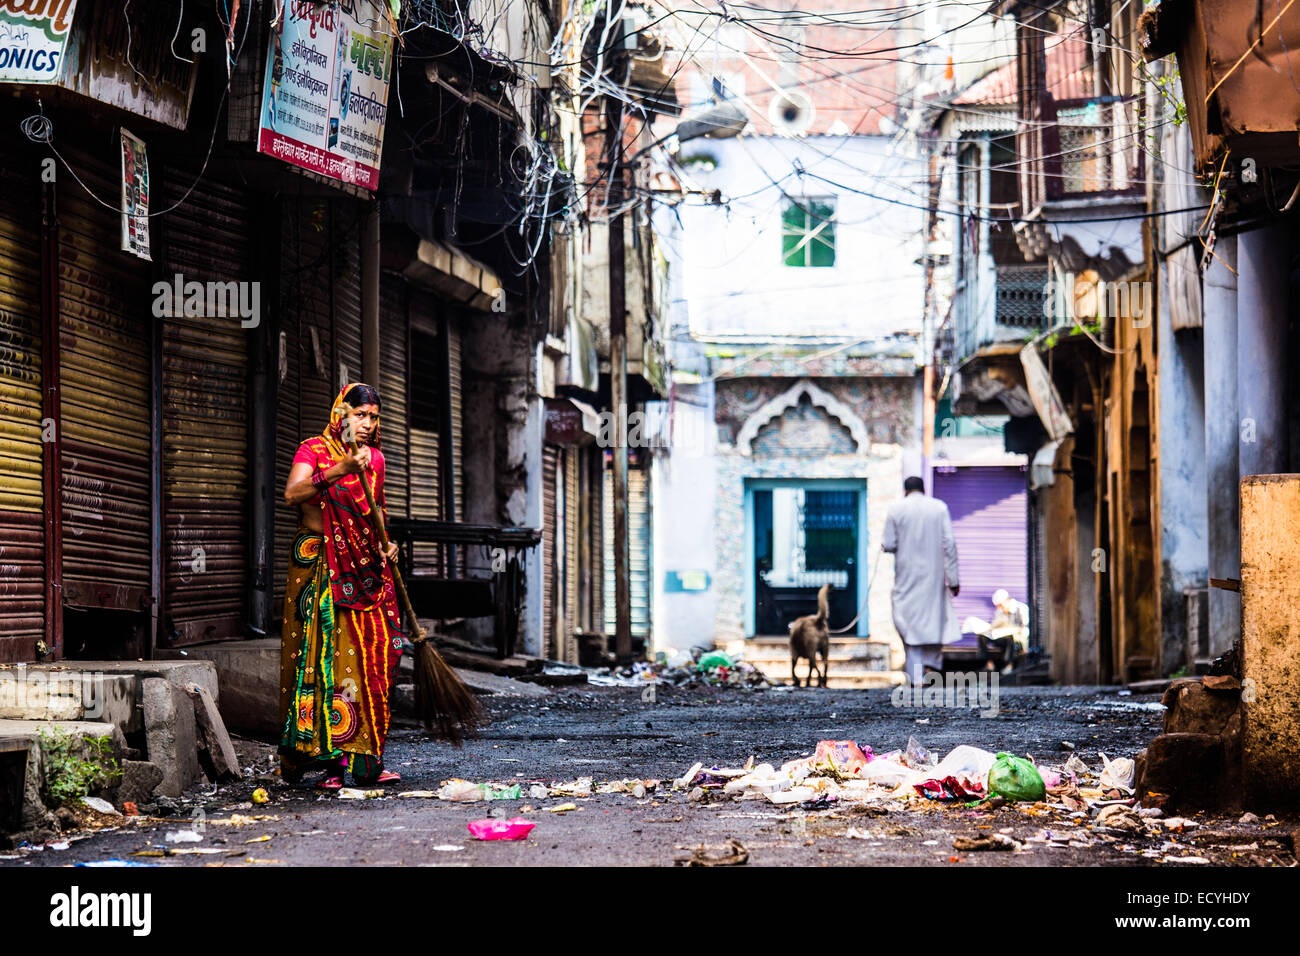 Woman sweeping rubbish in the old town in Bhopal, Madhya Pradesh, India - Stock Image